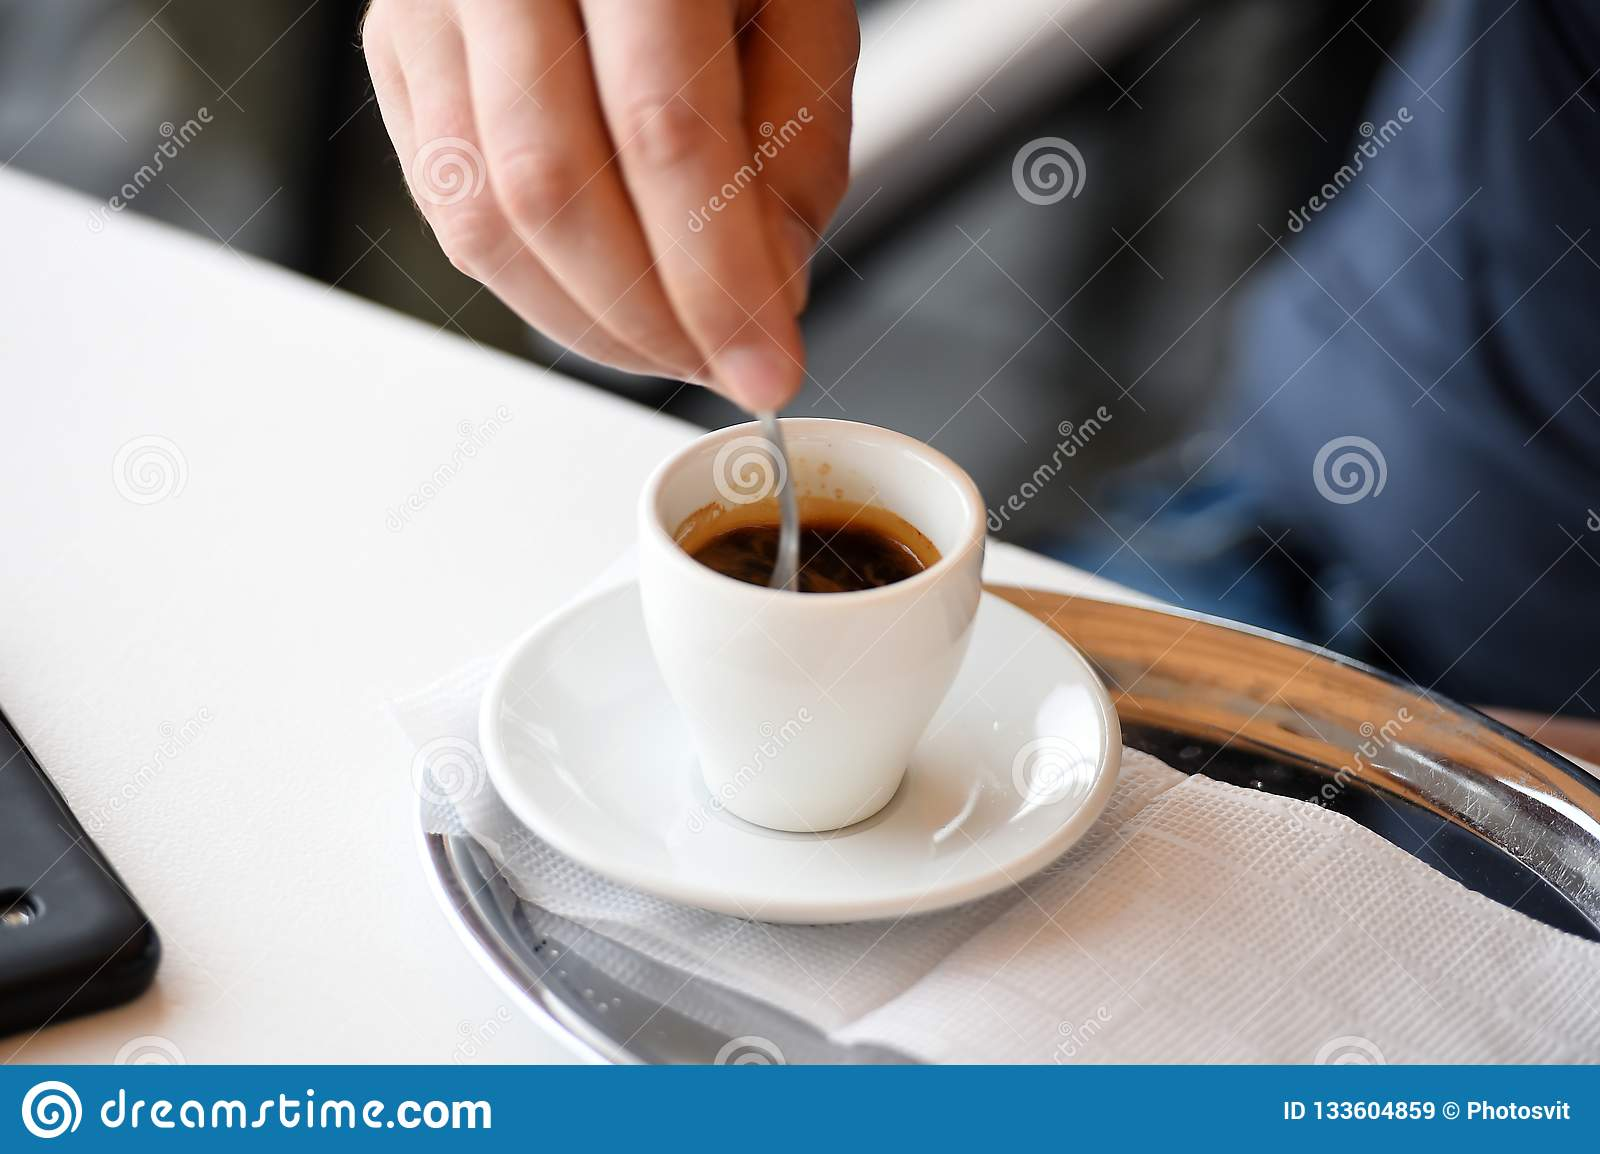 Cup espresso coffee on table with plate and spoon. Coffee time concept. Stir sugar in coffee cup. Male hand hold spoon